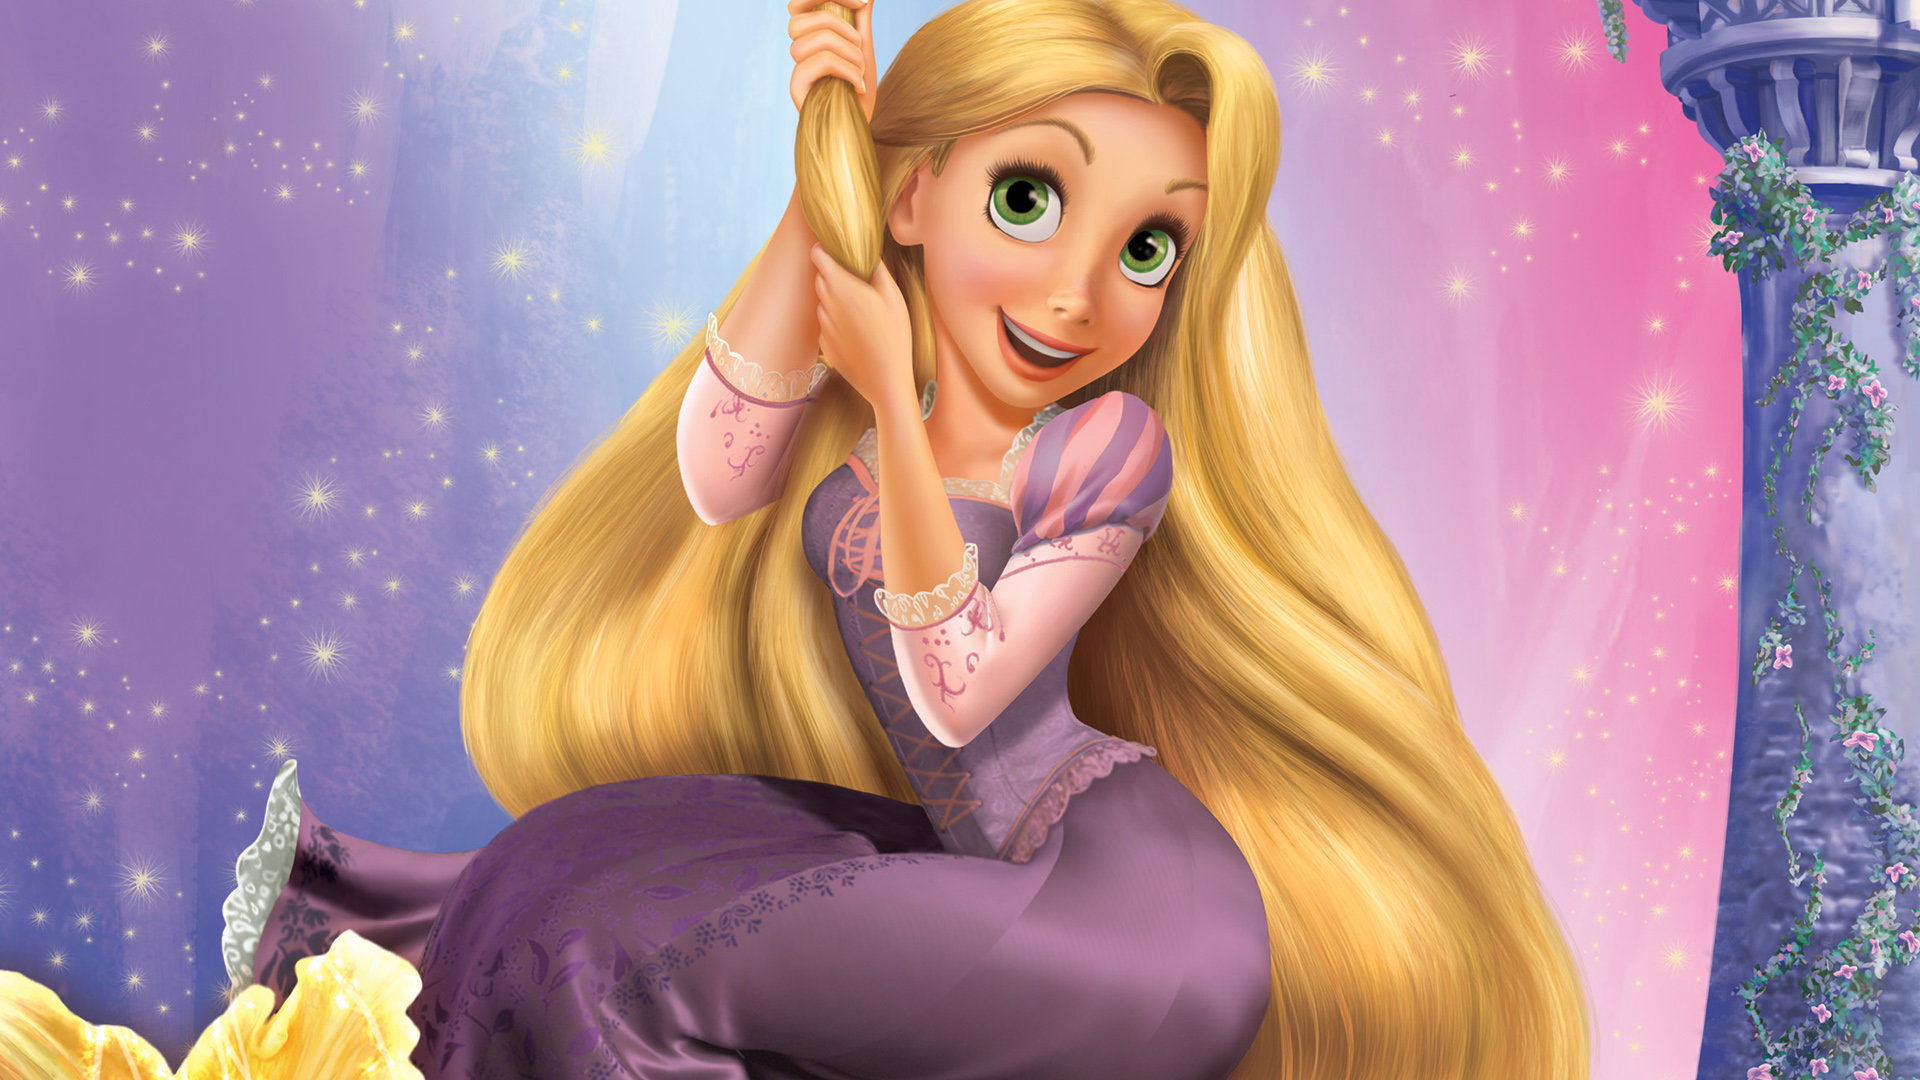 Tangled Wallpapers 1920x1080 Full Hd 1080p Desktop Backgrounds